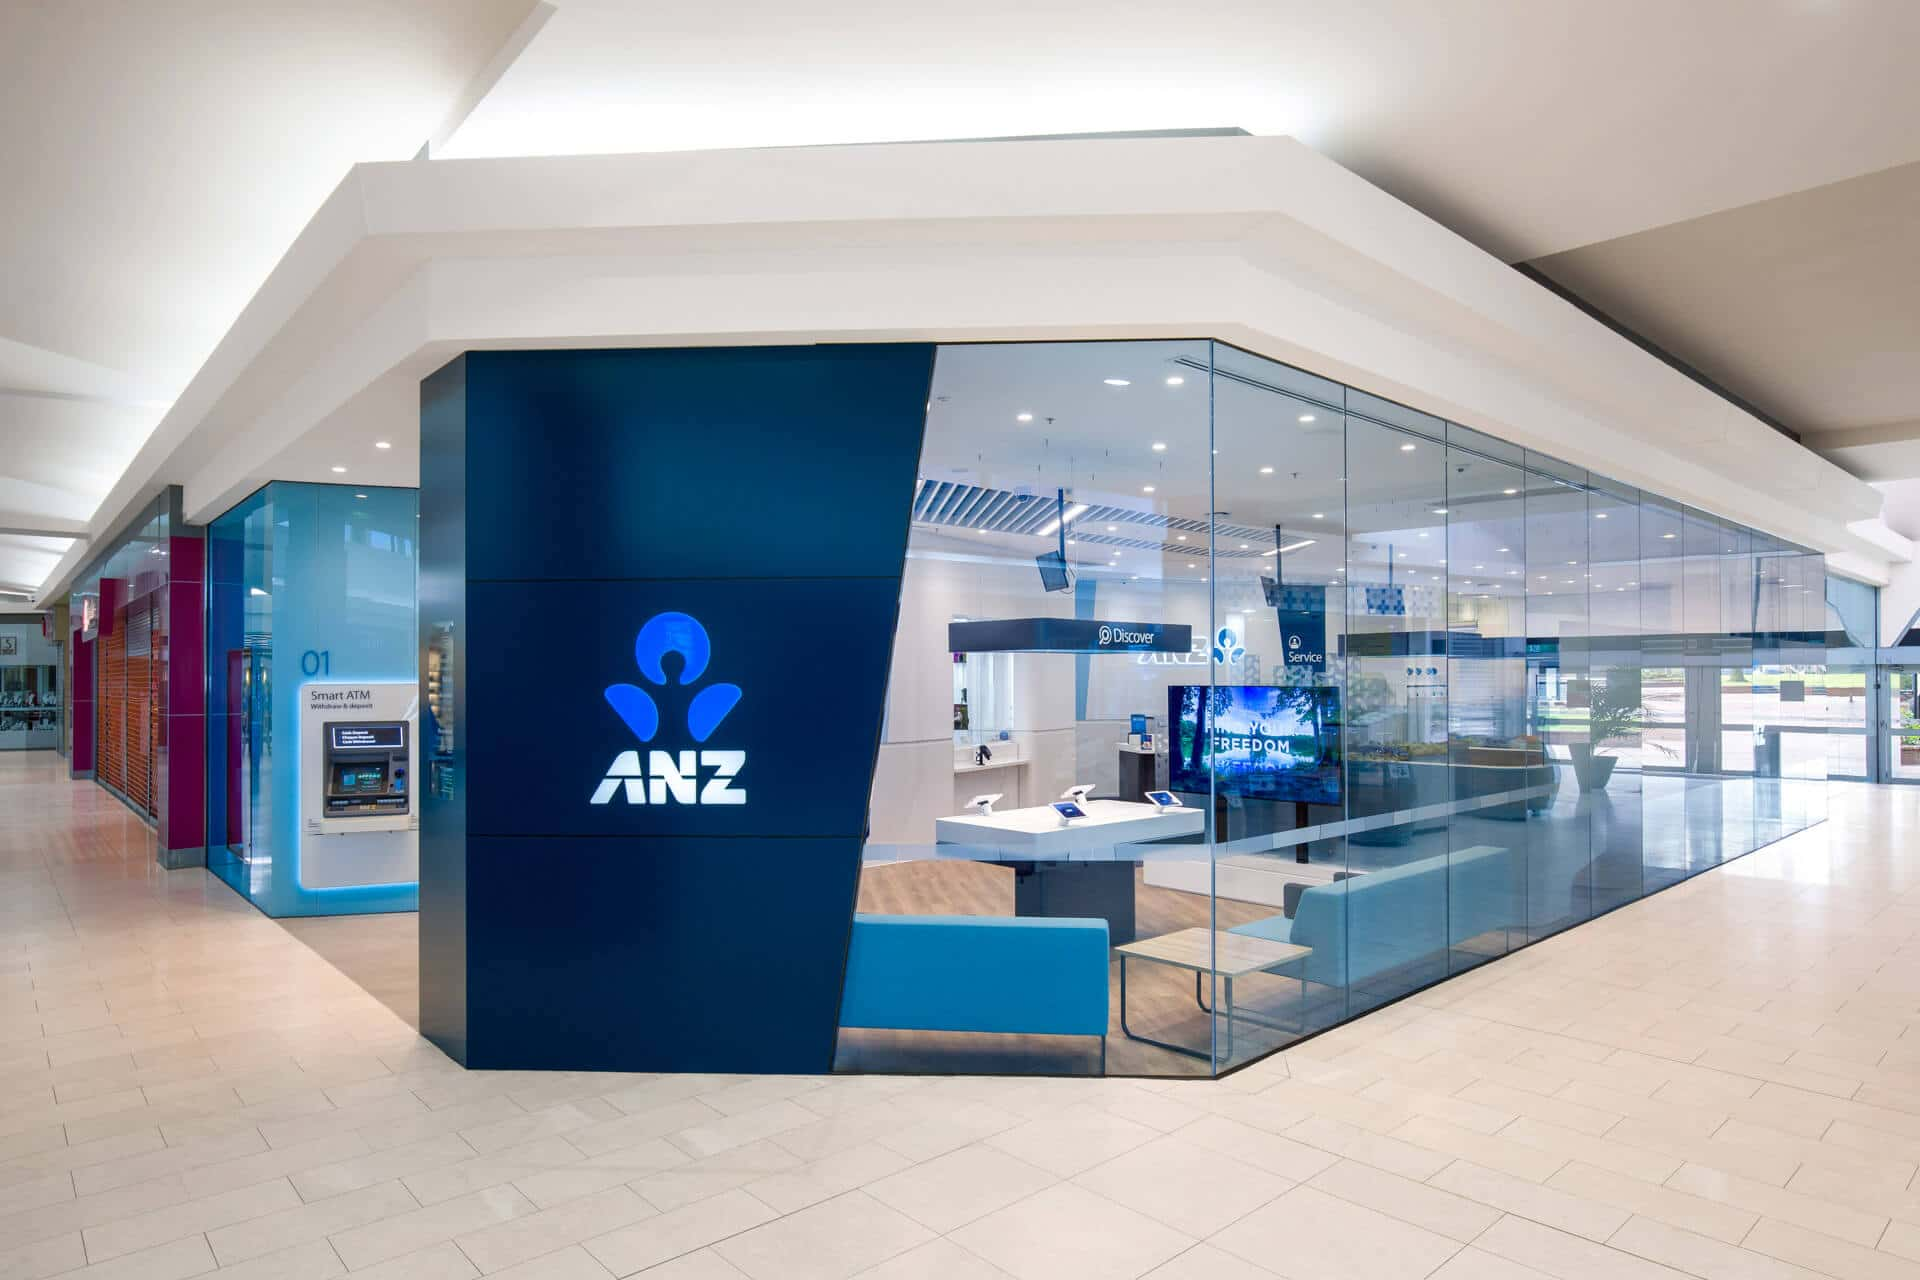 rtp-retail-architectural-photography-anz-bank-adherettes-signage-cranbourne-shopping-centre-store-internal-cashier-help-desk